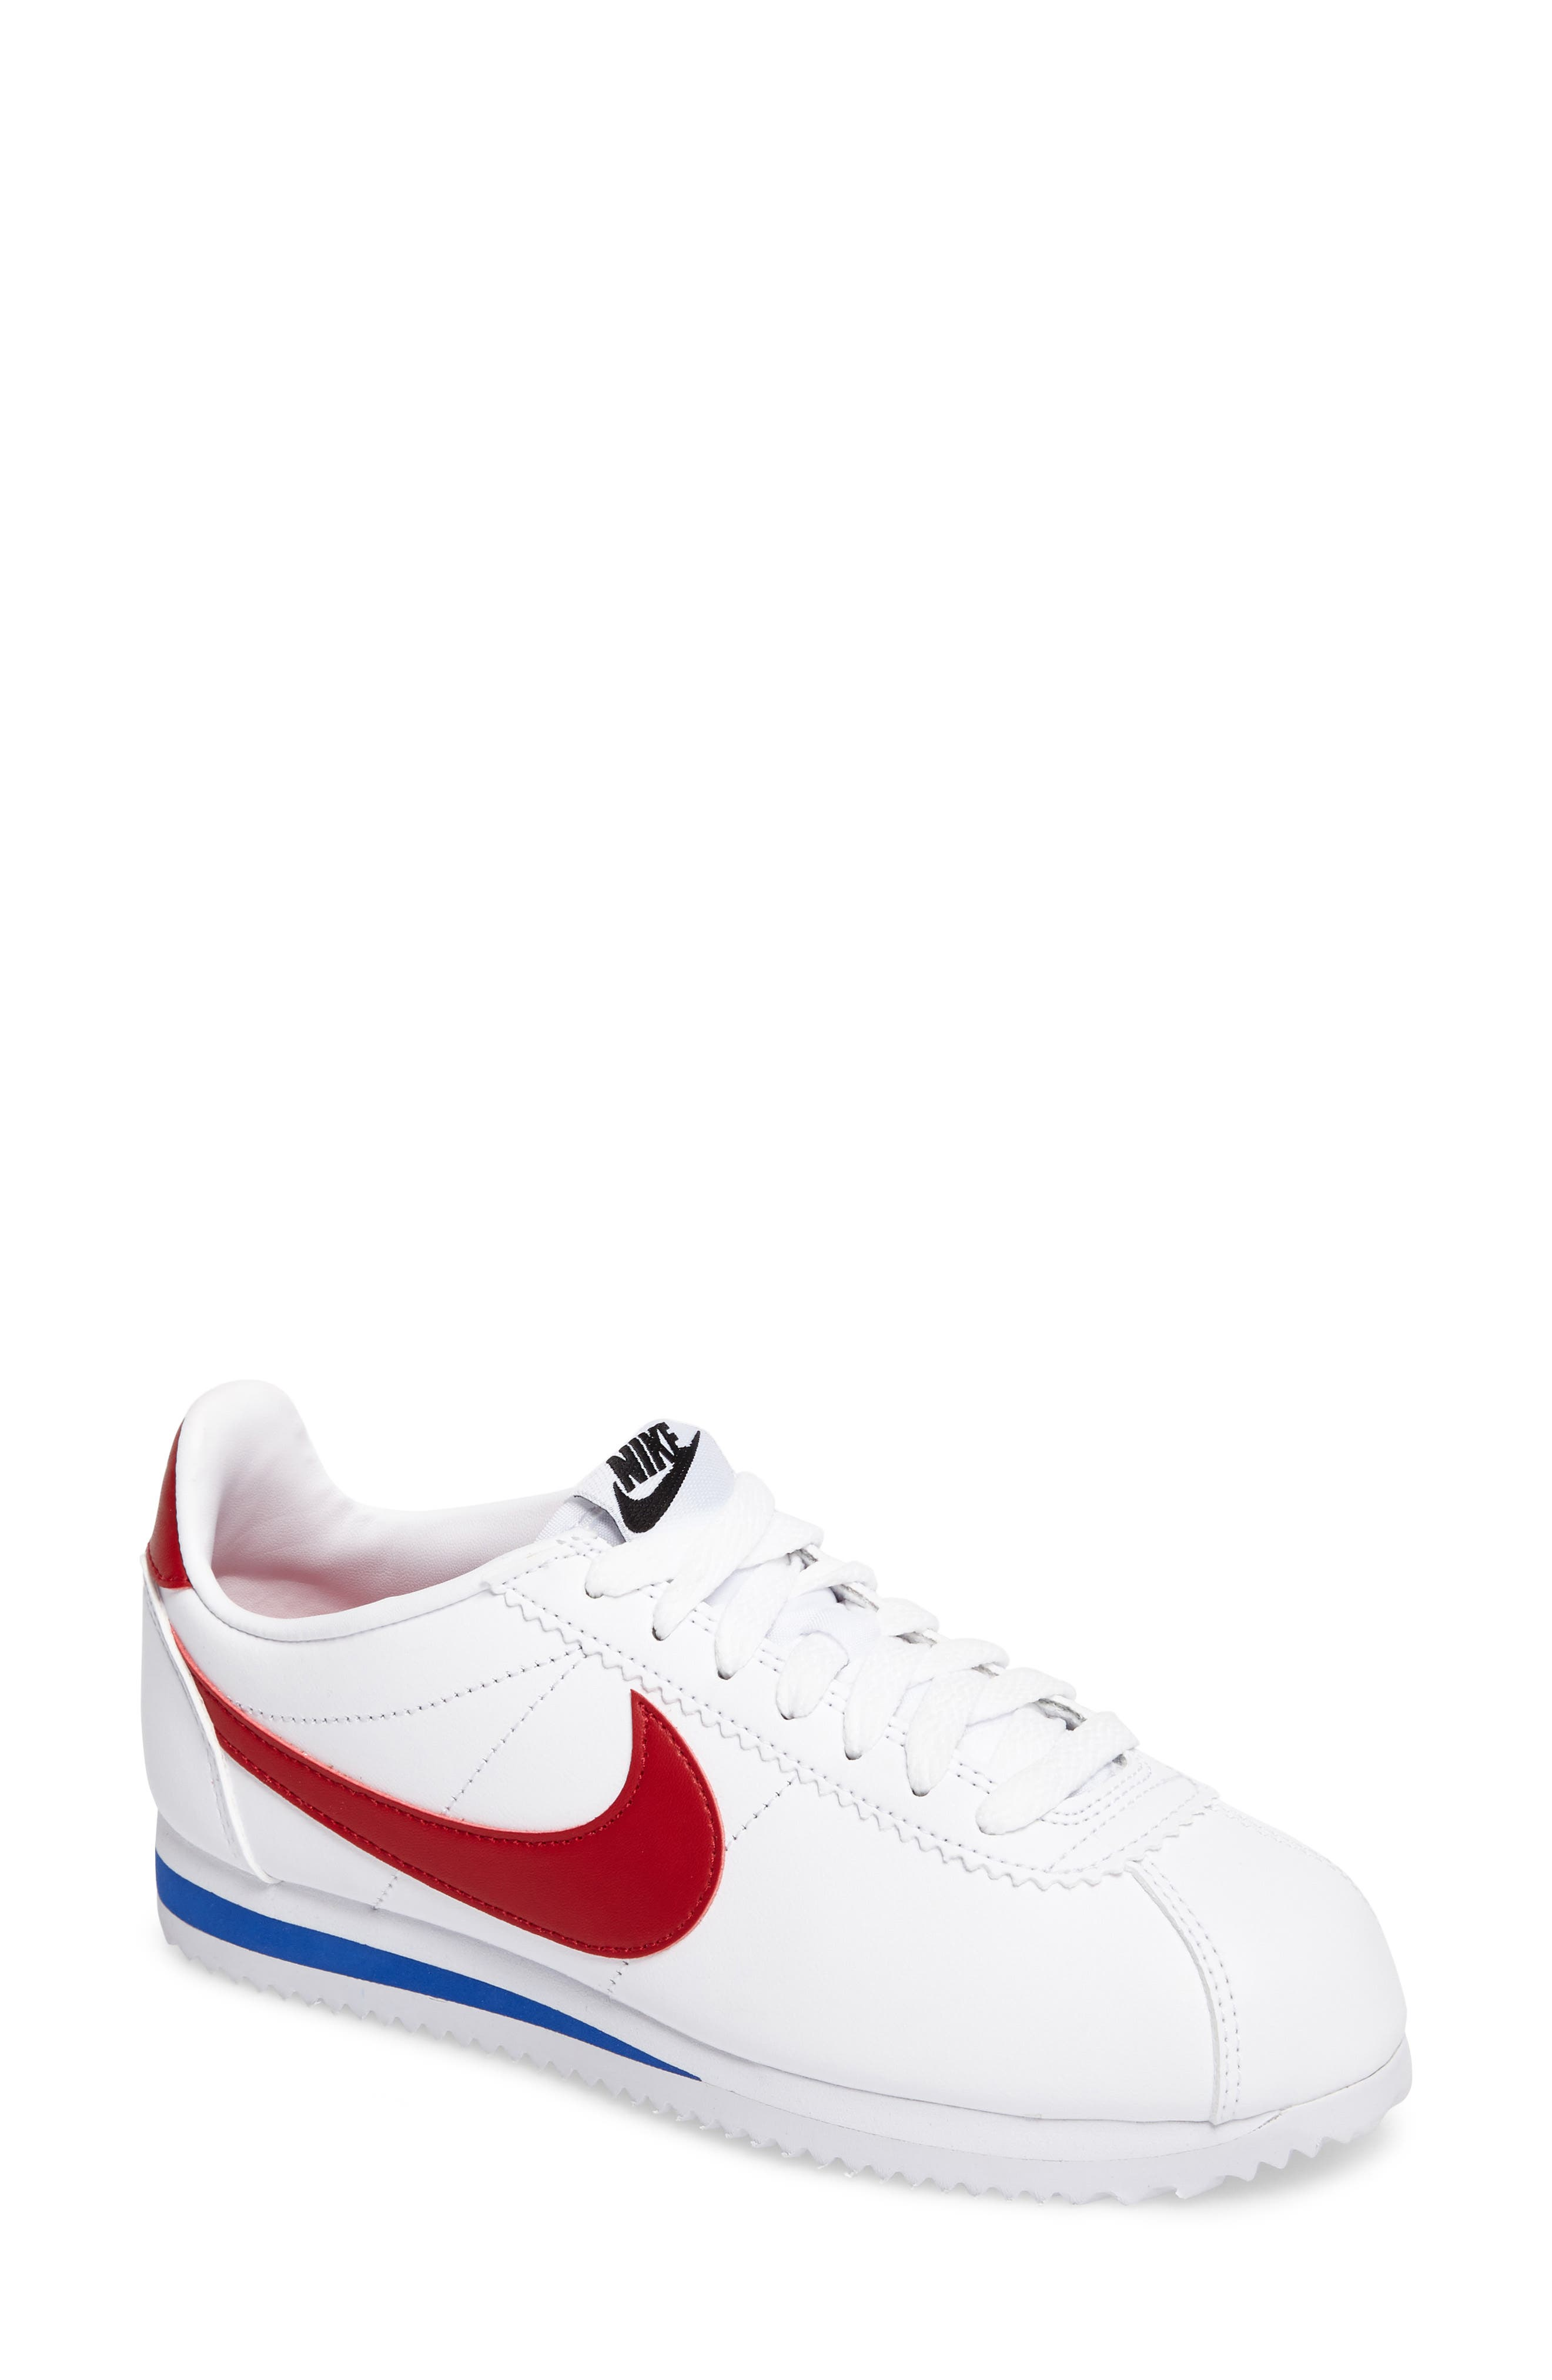 Classic Cortez Sneaker,                         Main,                         color, WHITE/ VARSITY RED